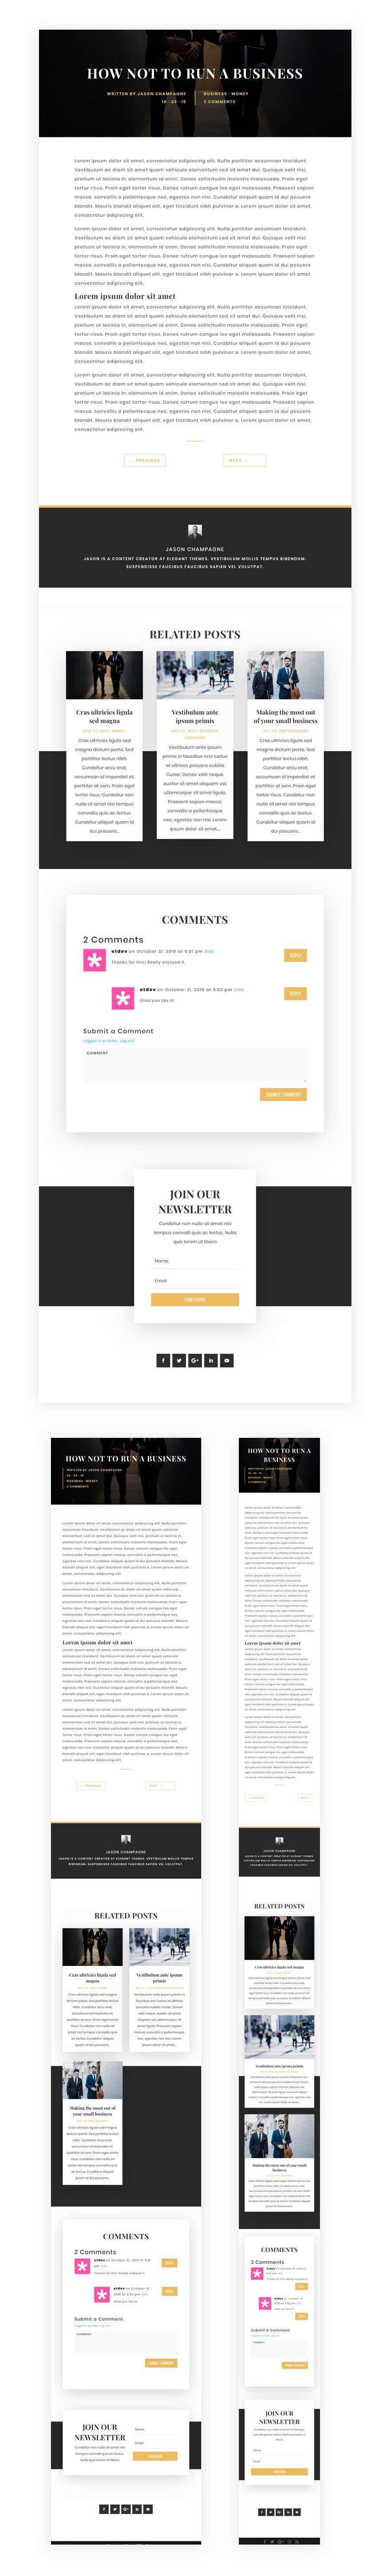 get-a-free-blog-post-template-for-divis-business-consultant-layout-pack Get a FREE Blog Post Template for Divi's Business Consultant Layout Pack